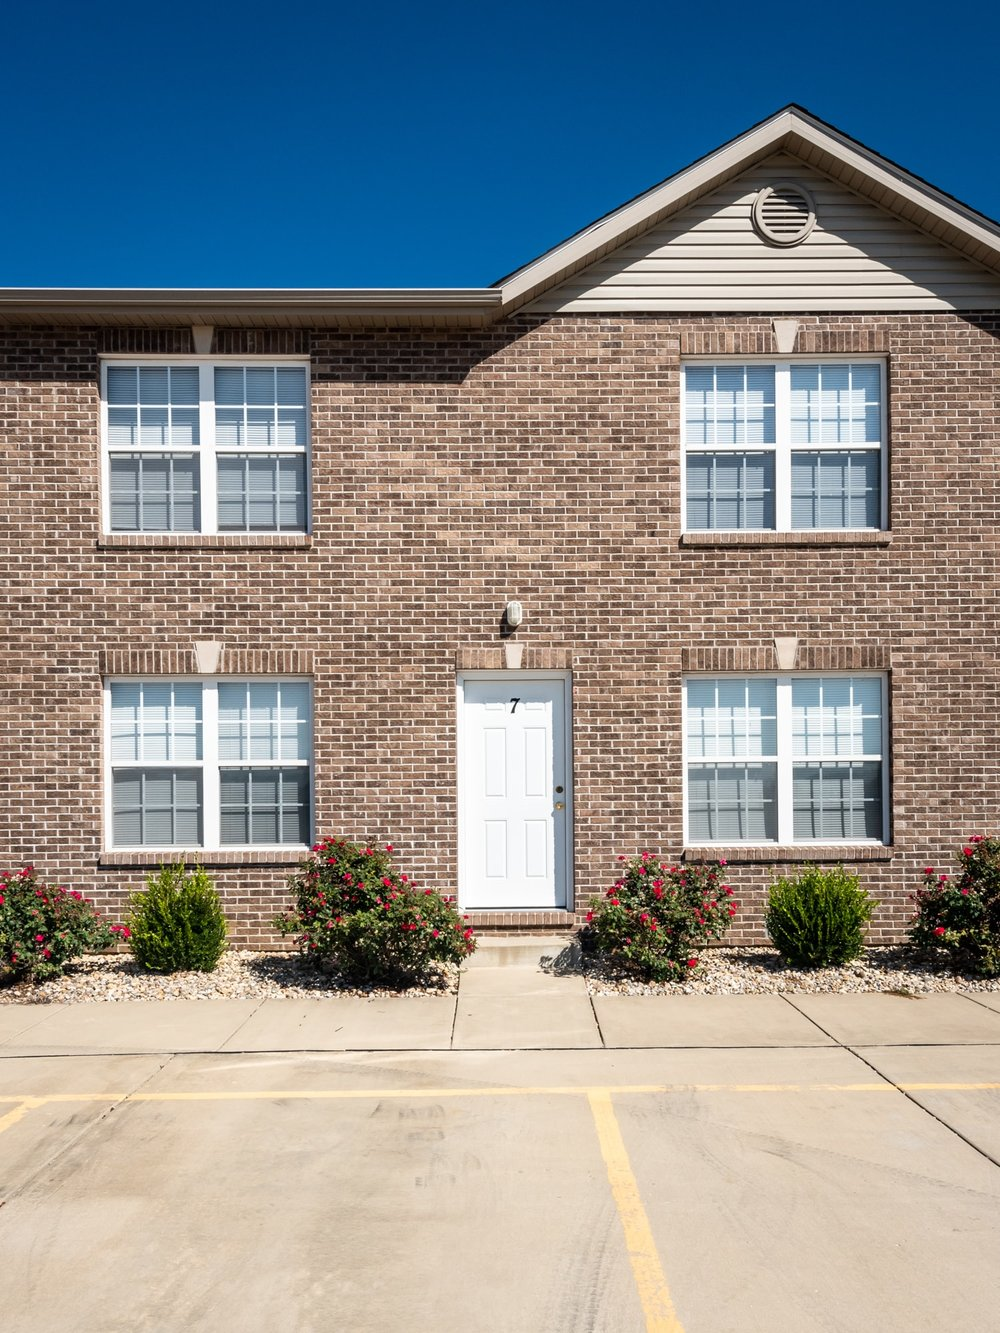 Up Towne Apartments